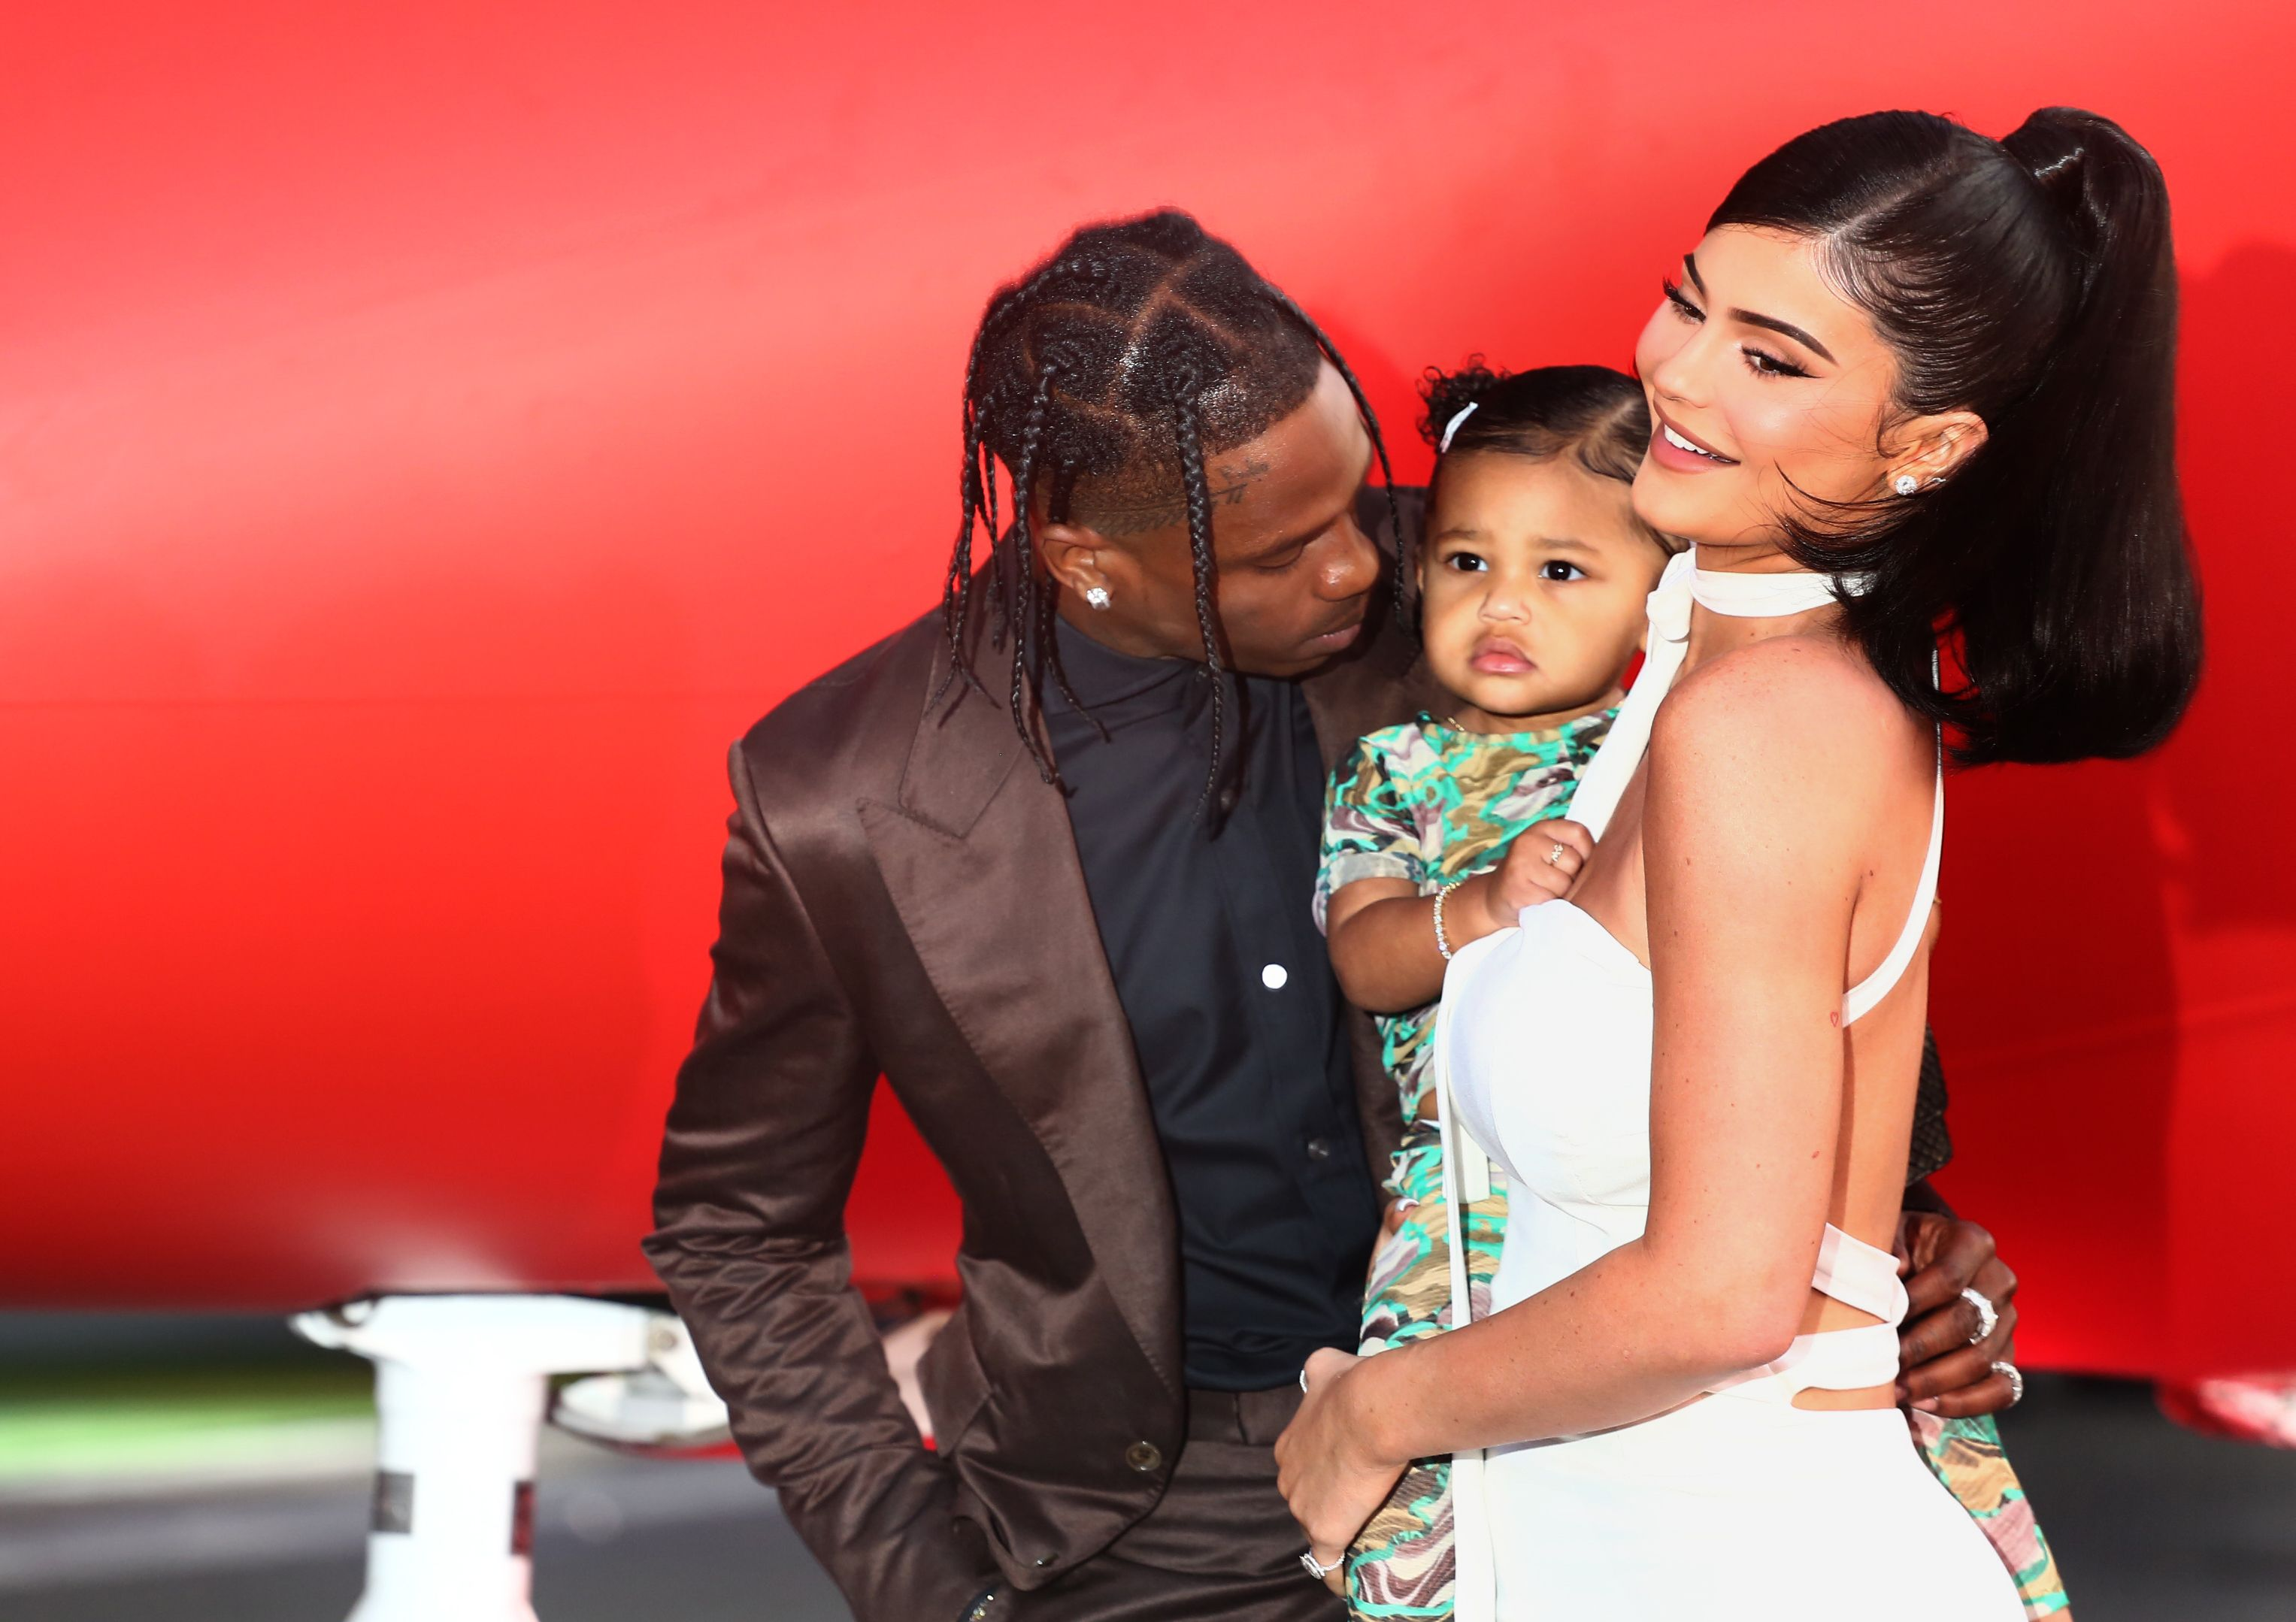 Travis Scott (left) puts his arm around Kylie Jenner (right) who is holding Stormi